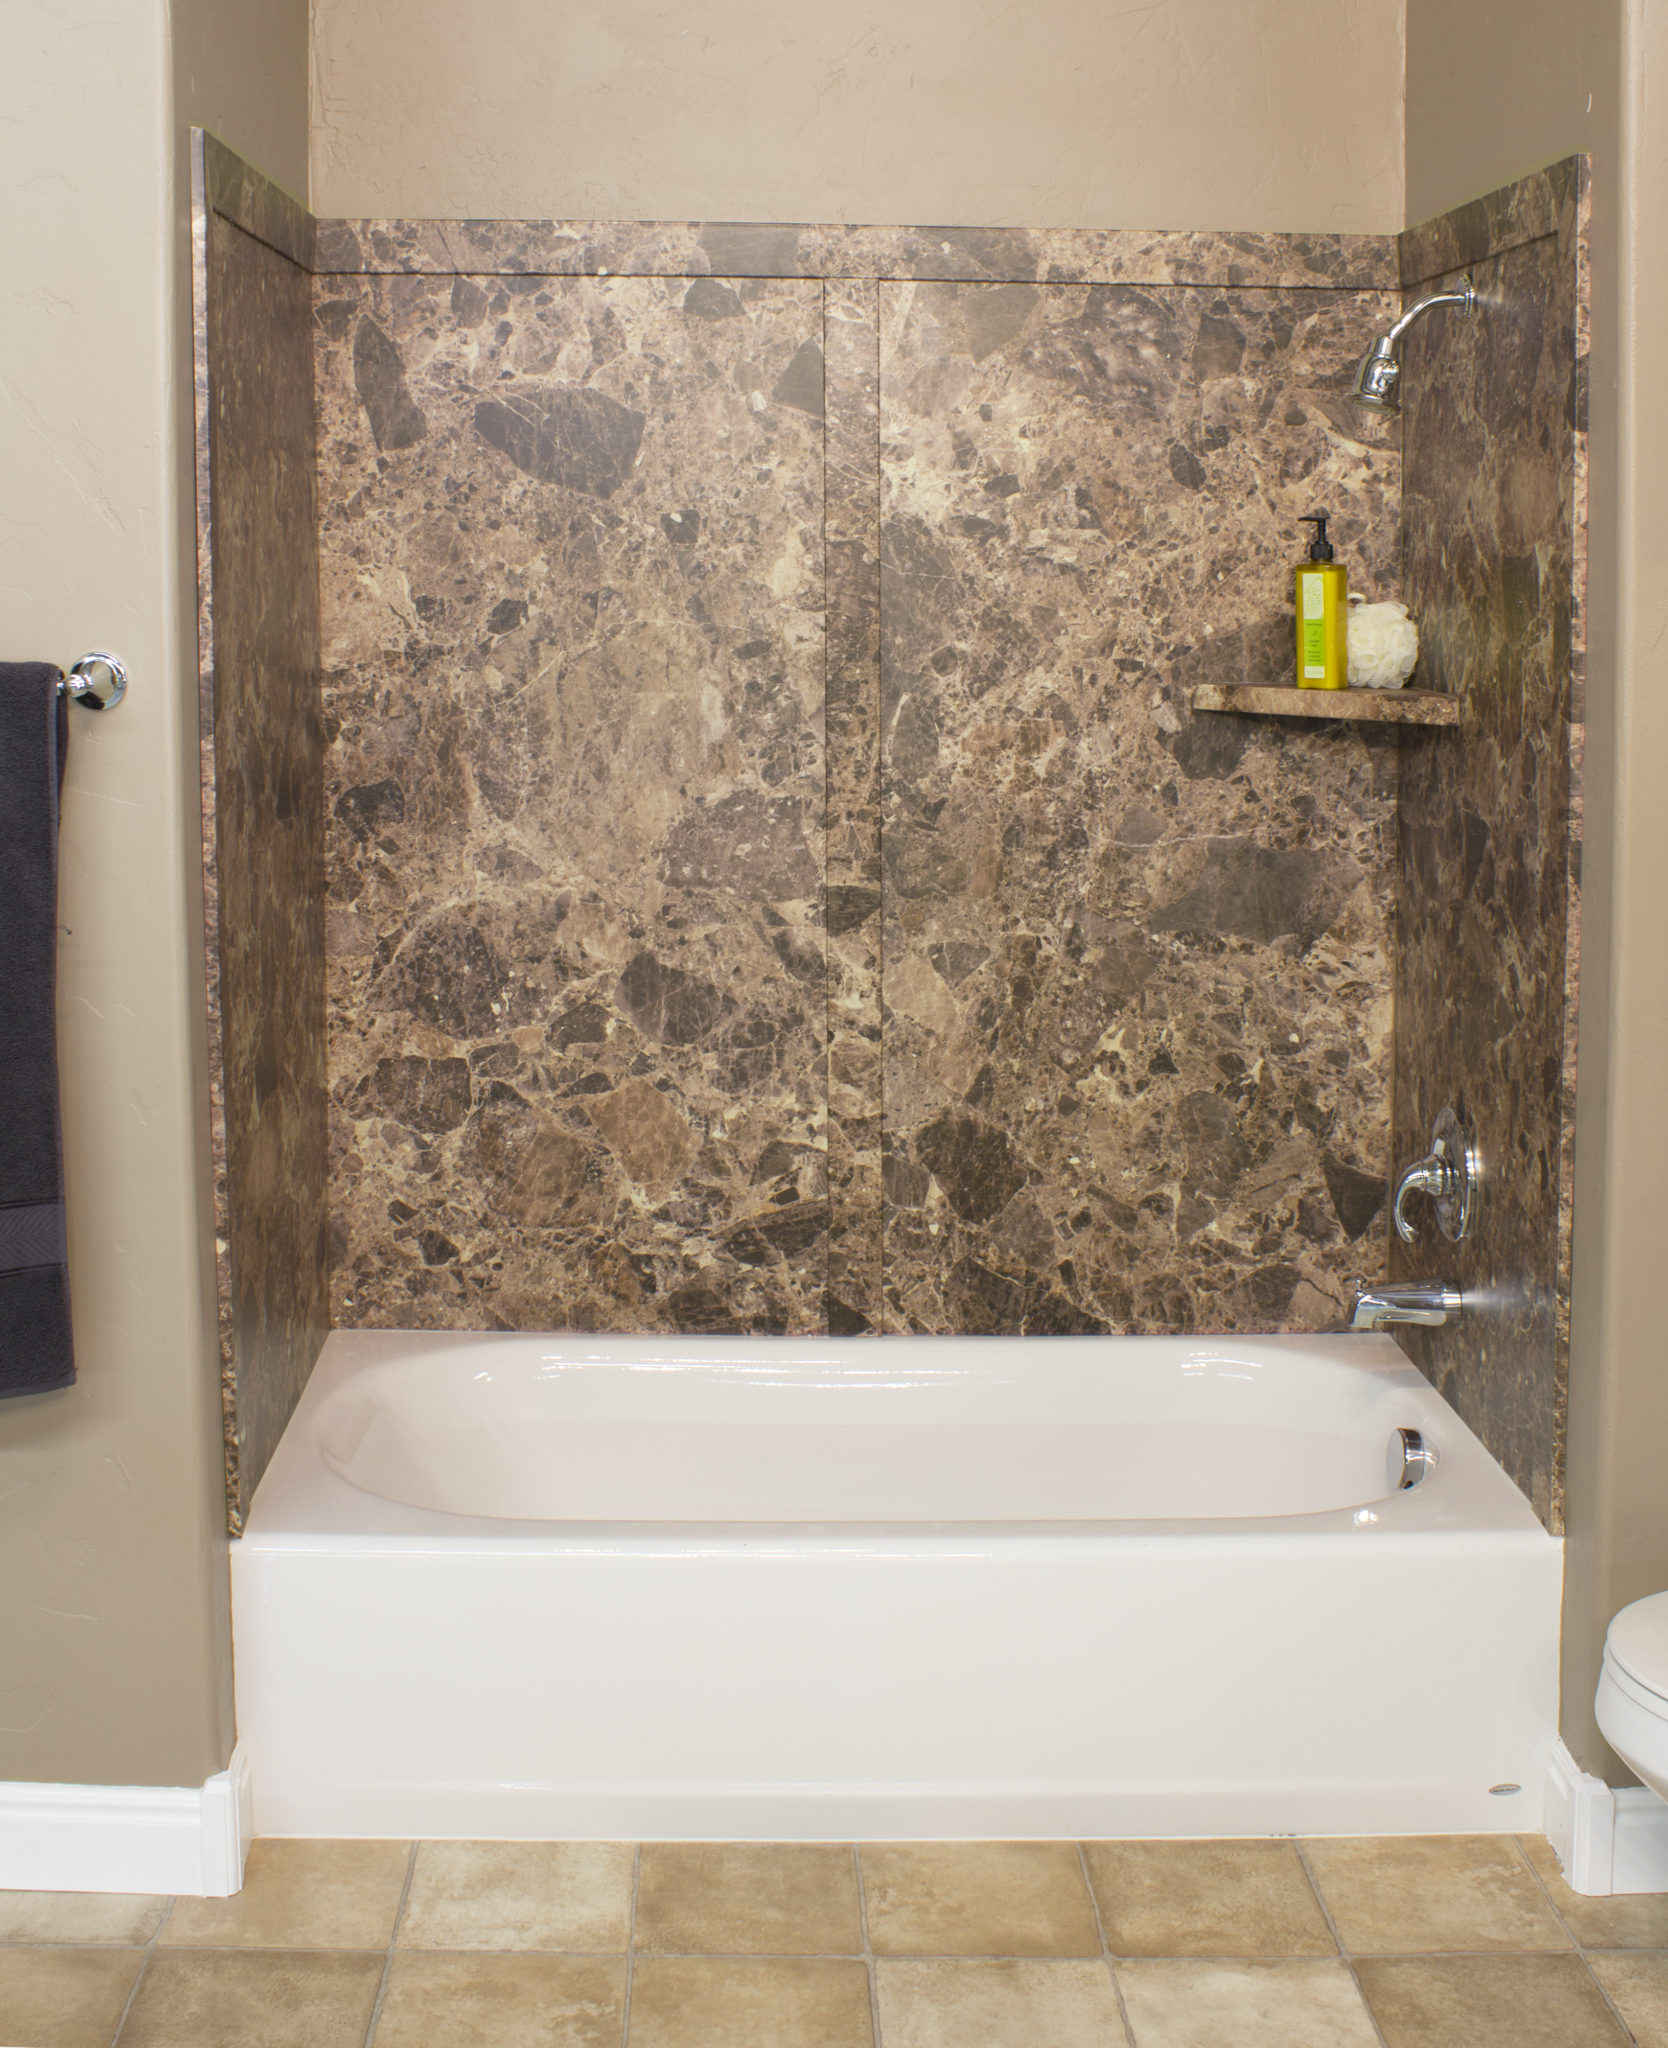 professional experienced guaranteed toronto bath remodeling - Bathroom Remodel Toronto